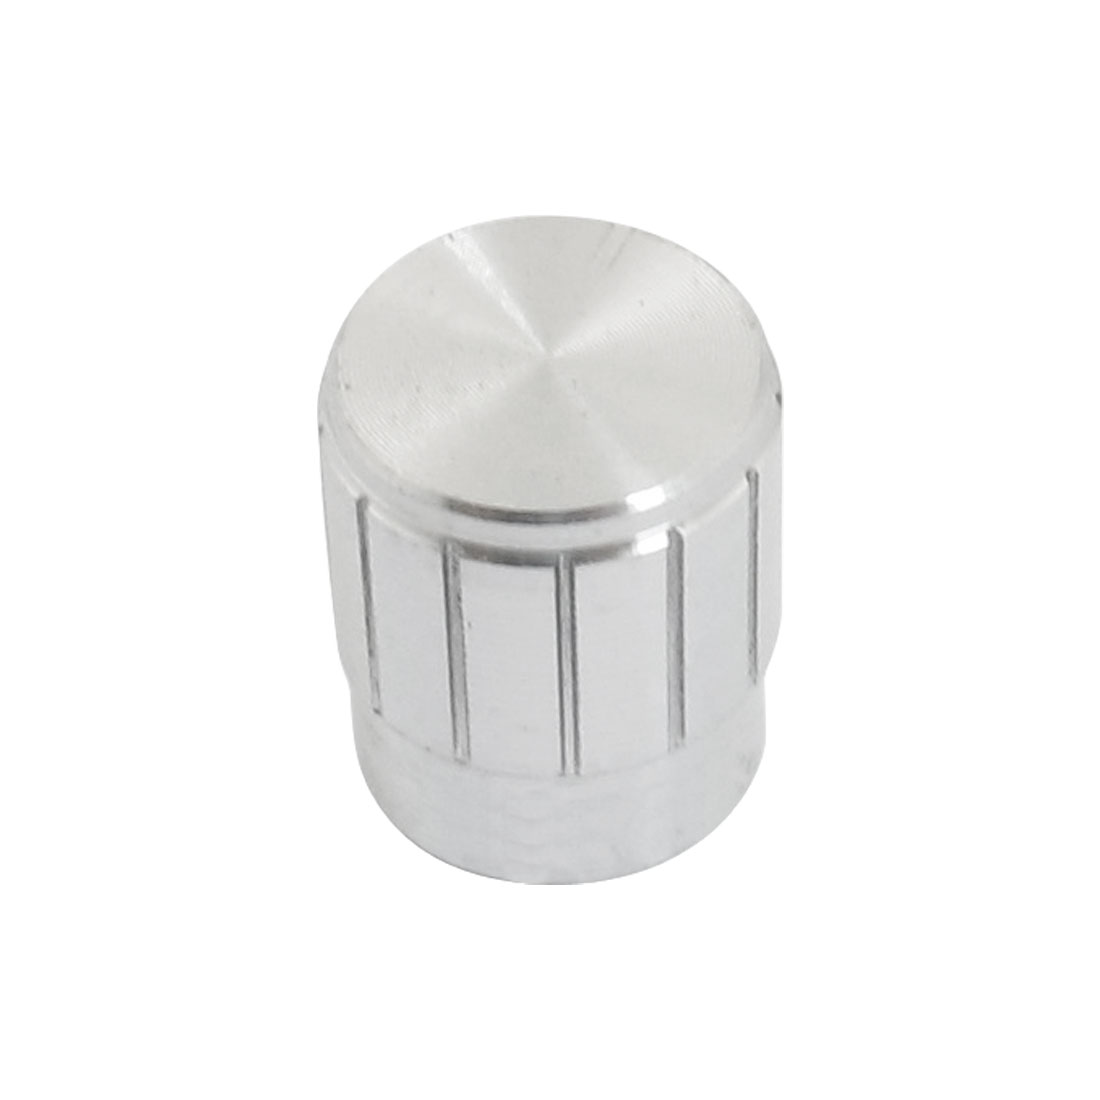 13mm x 17mm Potentiometer Control Volume Rotary Knob Cap Silver Tone